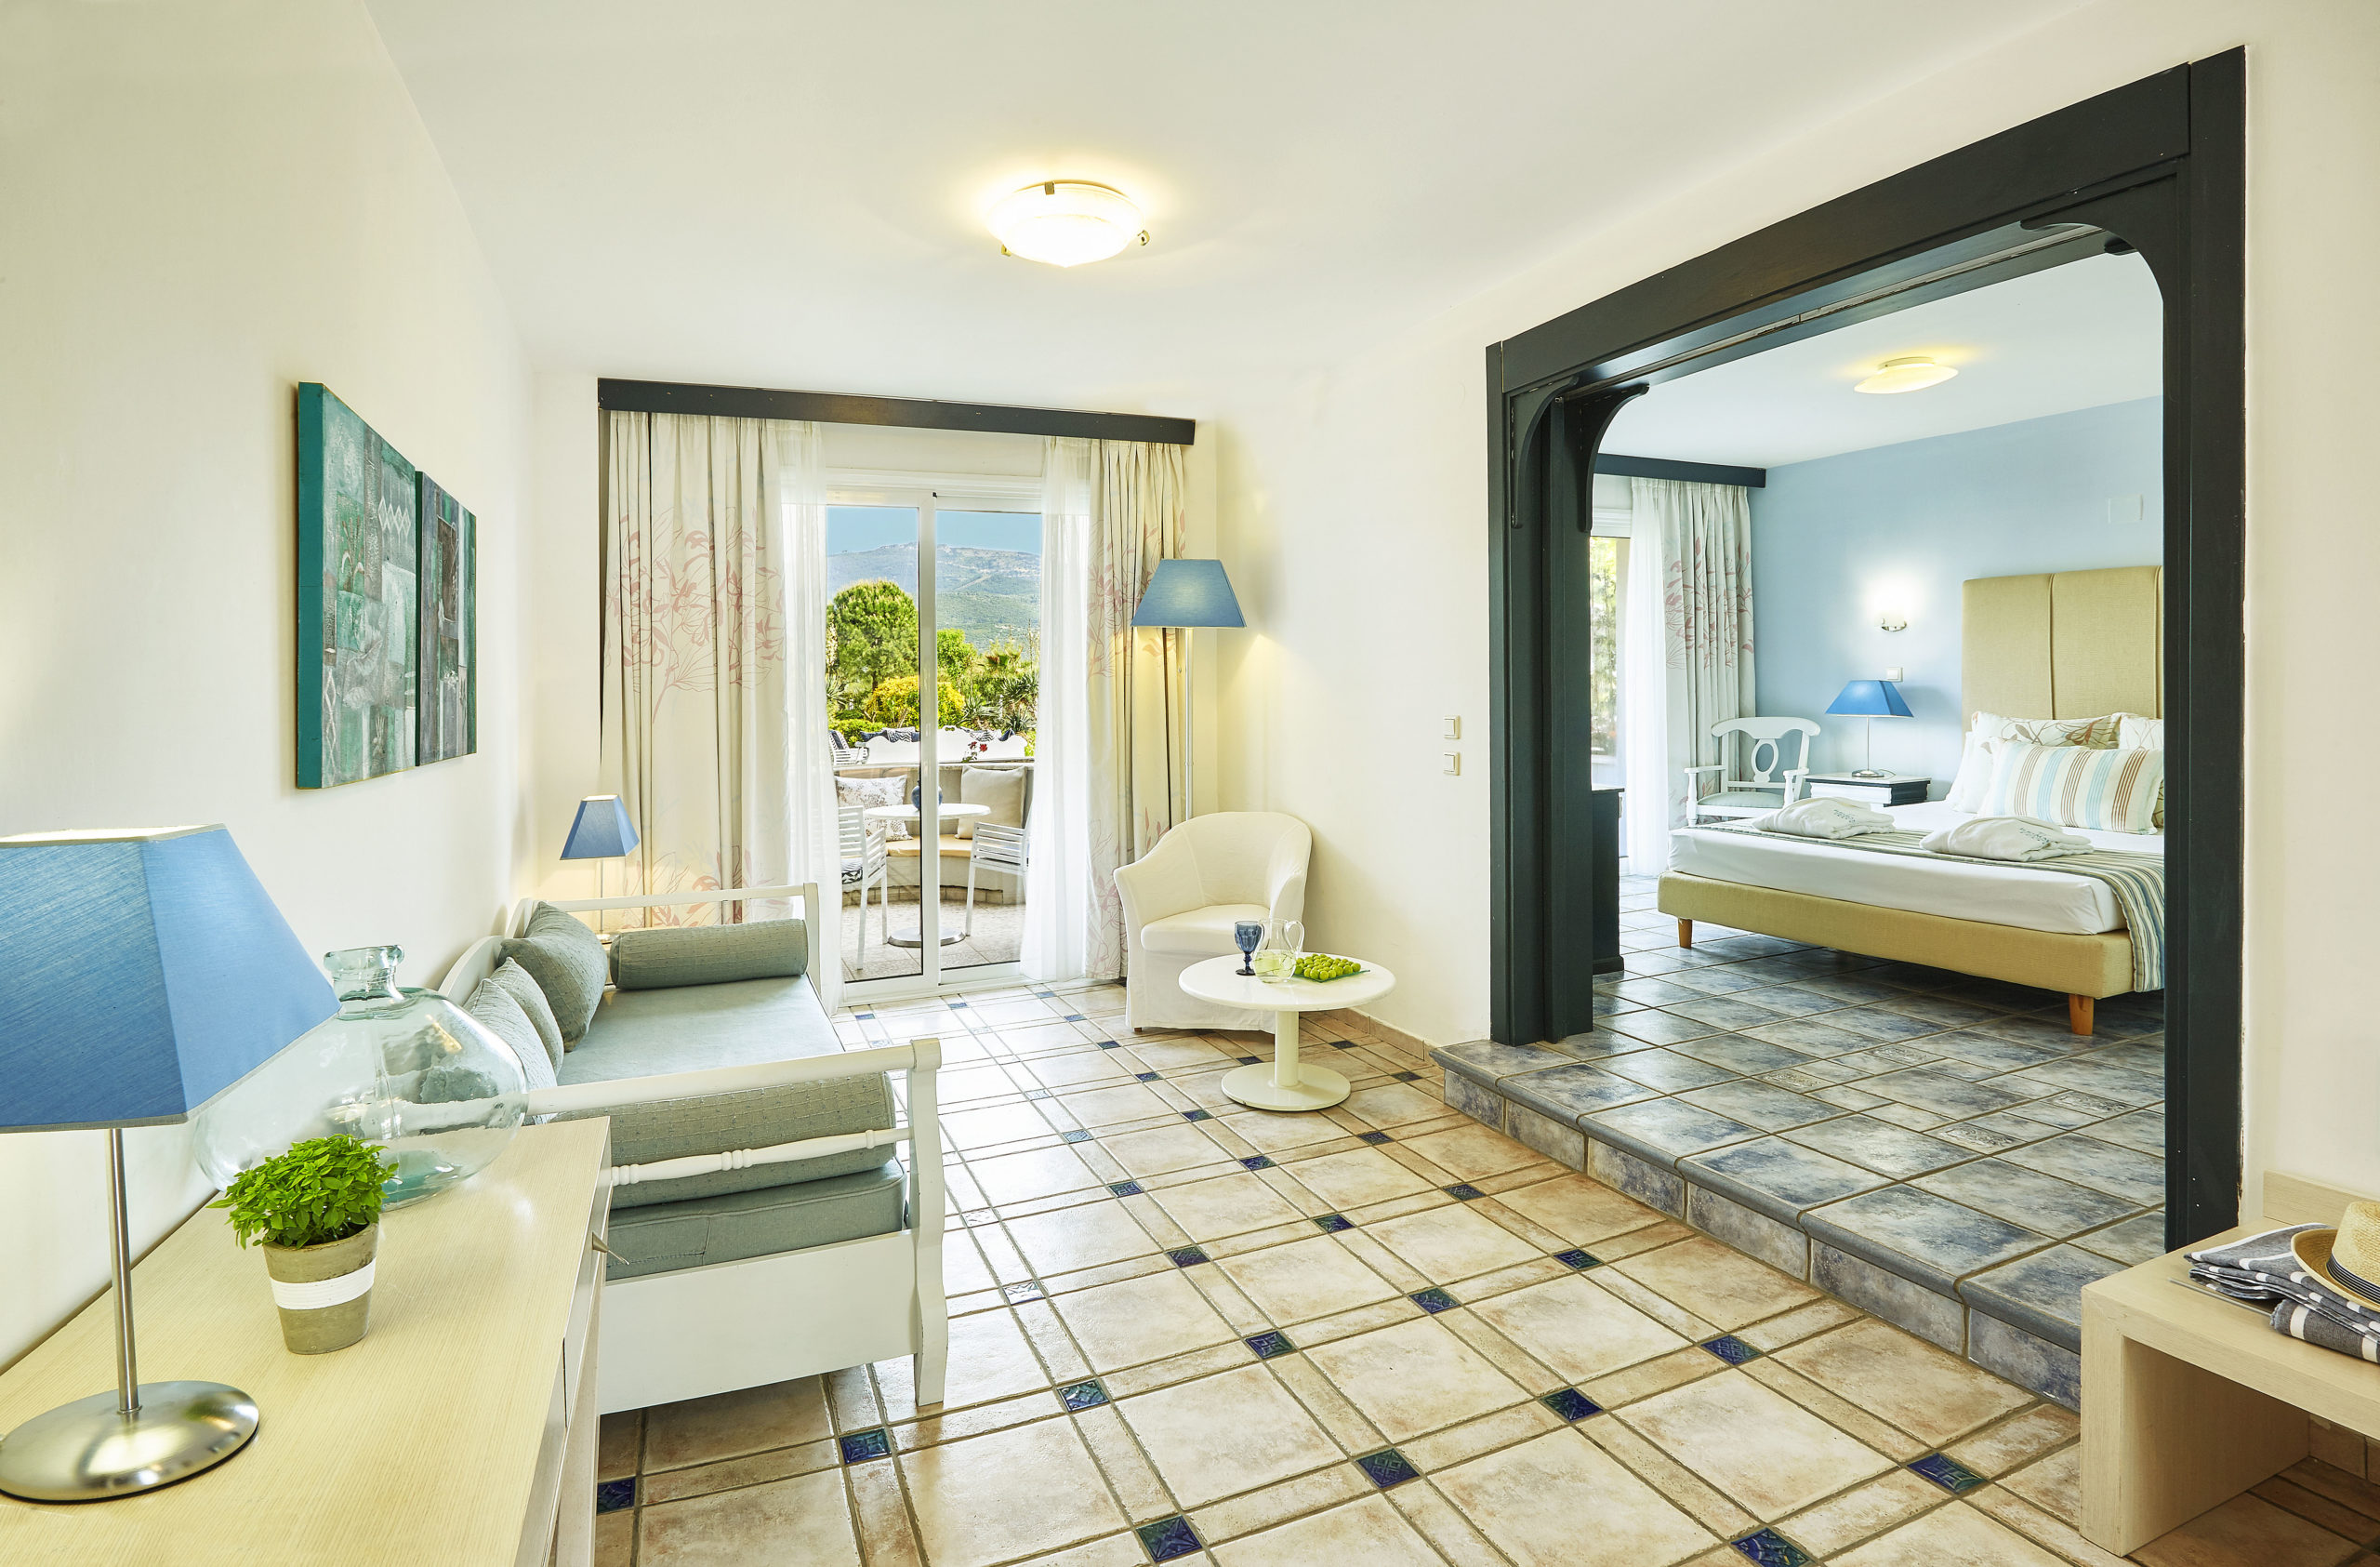 Deluxe Suite With Private Garden Terrace